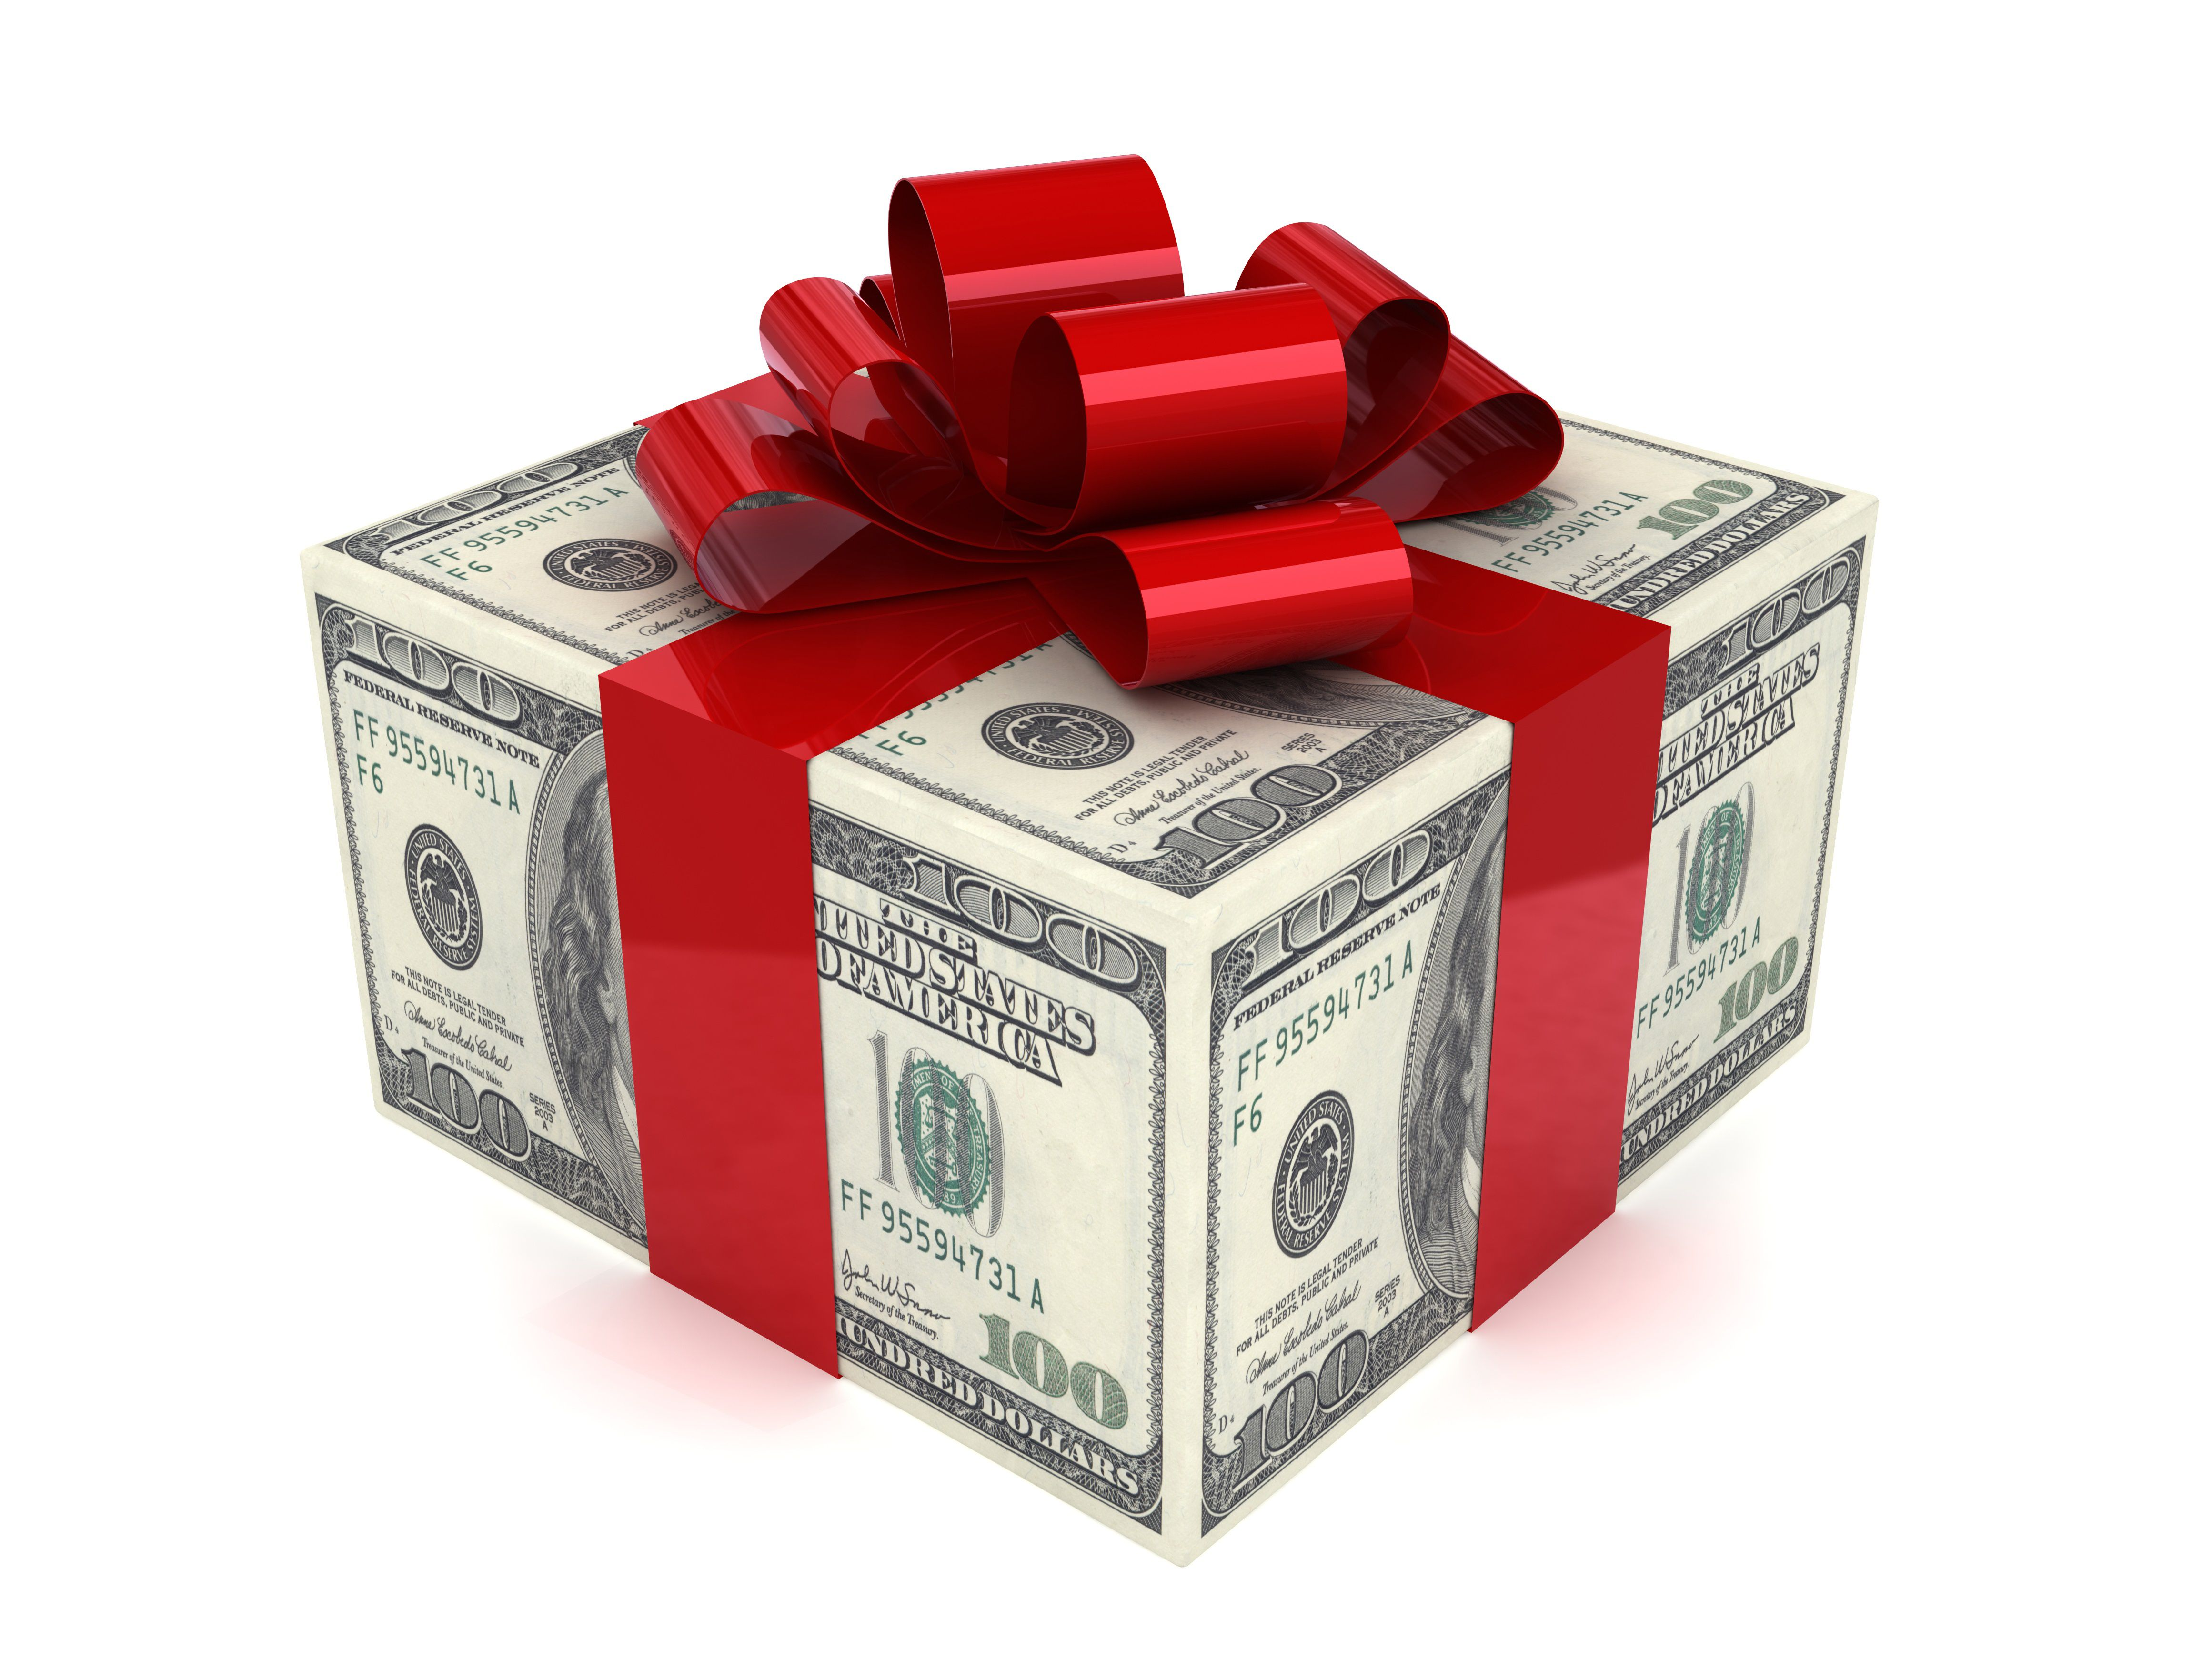 What Gifts Are Subject to the Gift Tax?